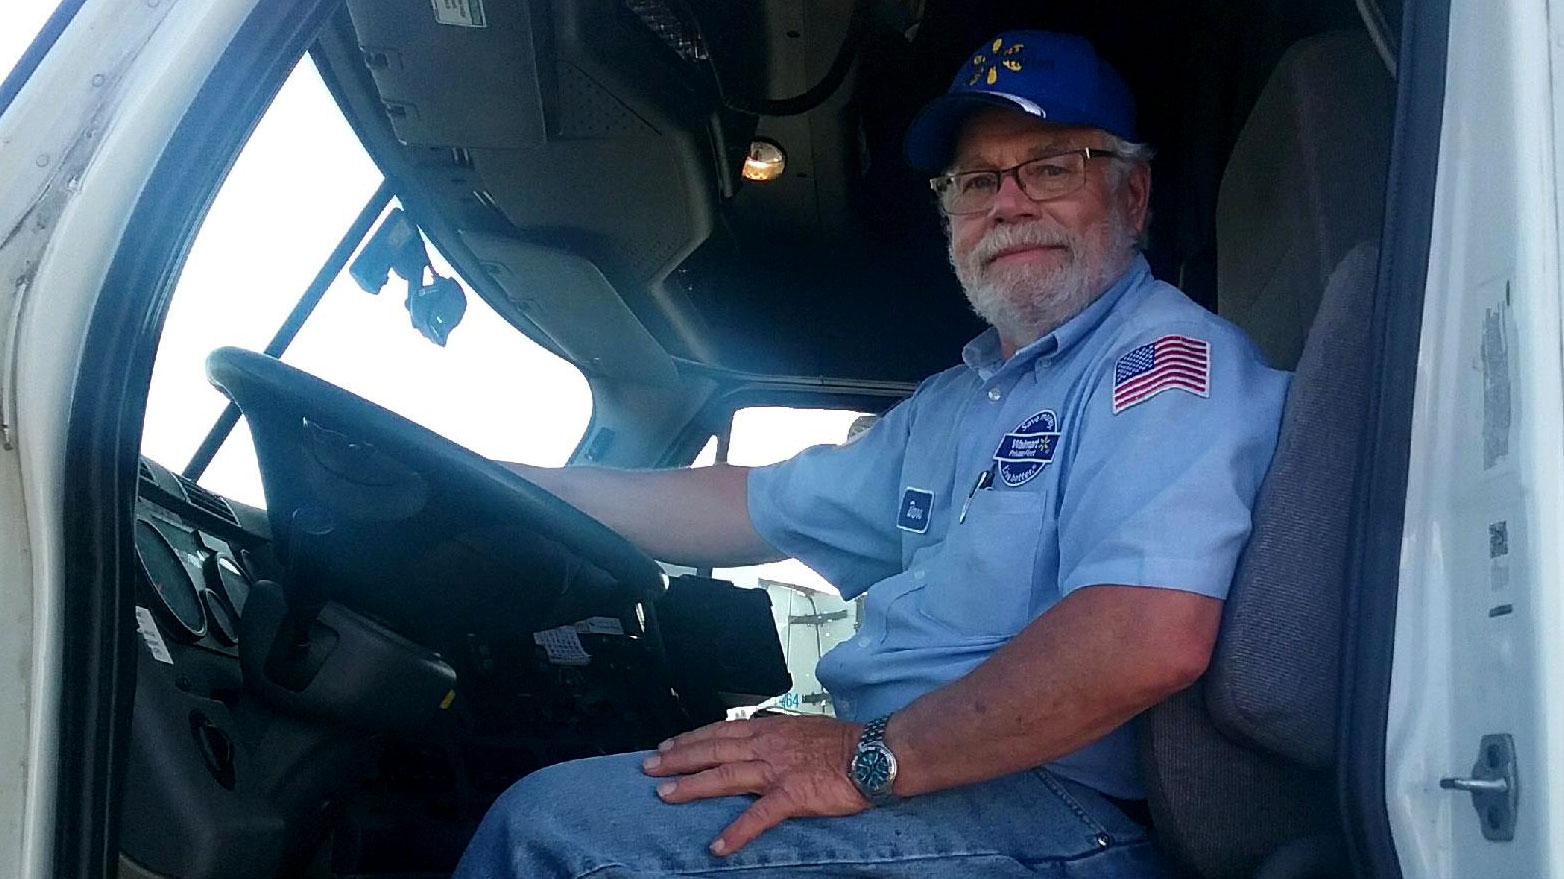 Truck driver sitting behind the wheel